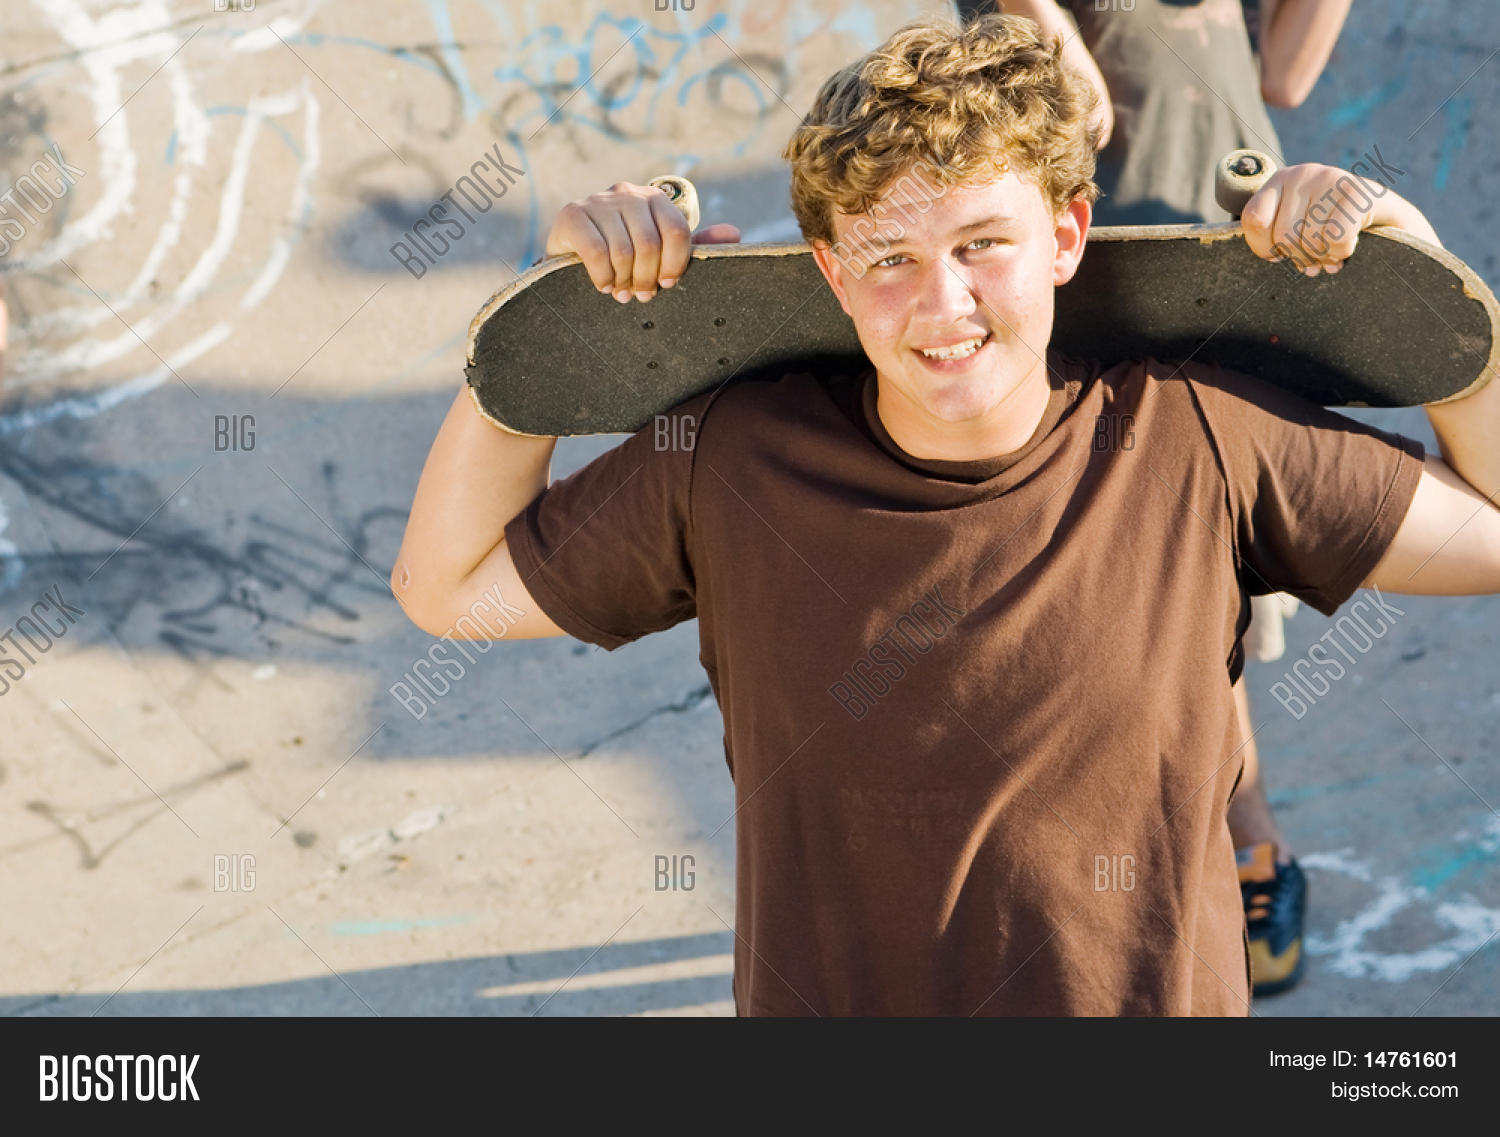 Young Teen Boys Image & Photo (Free Trial) | Bigstock